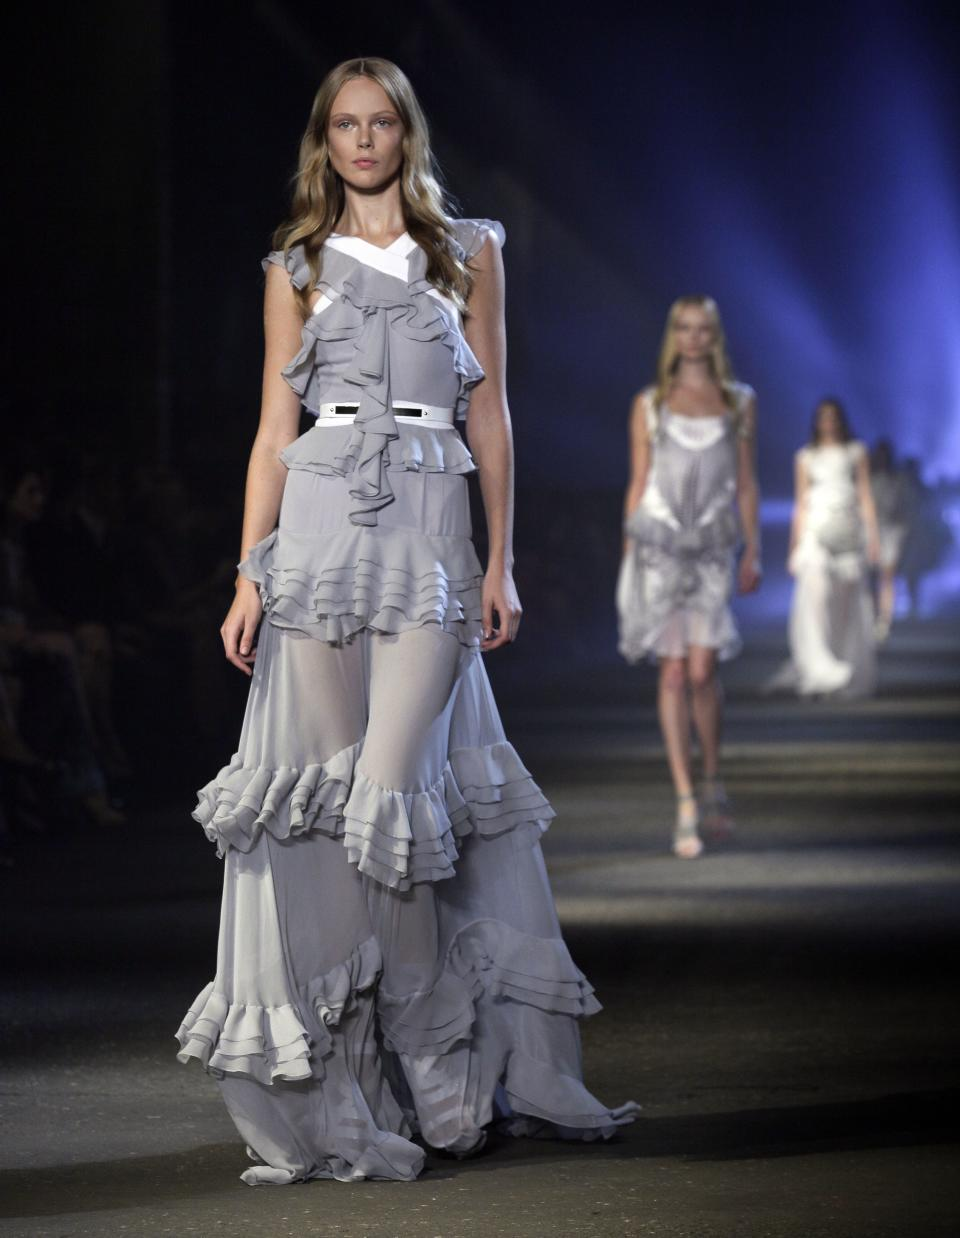 The Prabal Gurung Spring 2013 collection is modeled during Fashion Week in New York,  Saturday, Sept. 8, 2012. (AP Photo/Richard Drew)